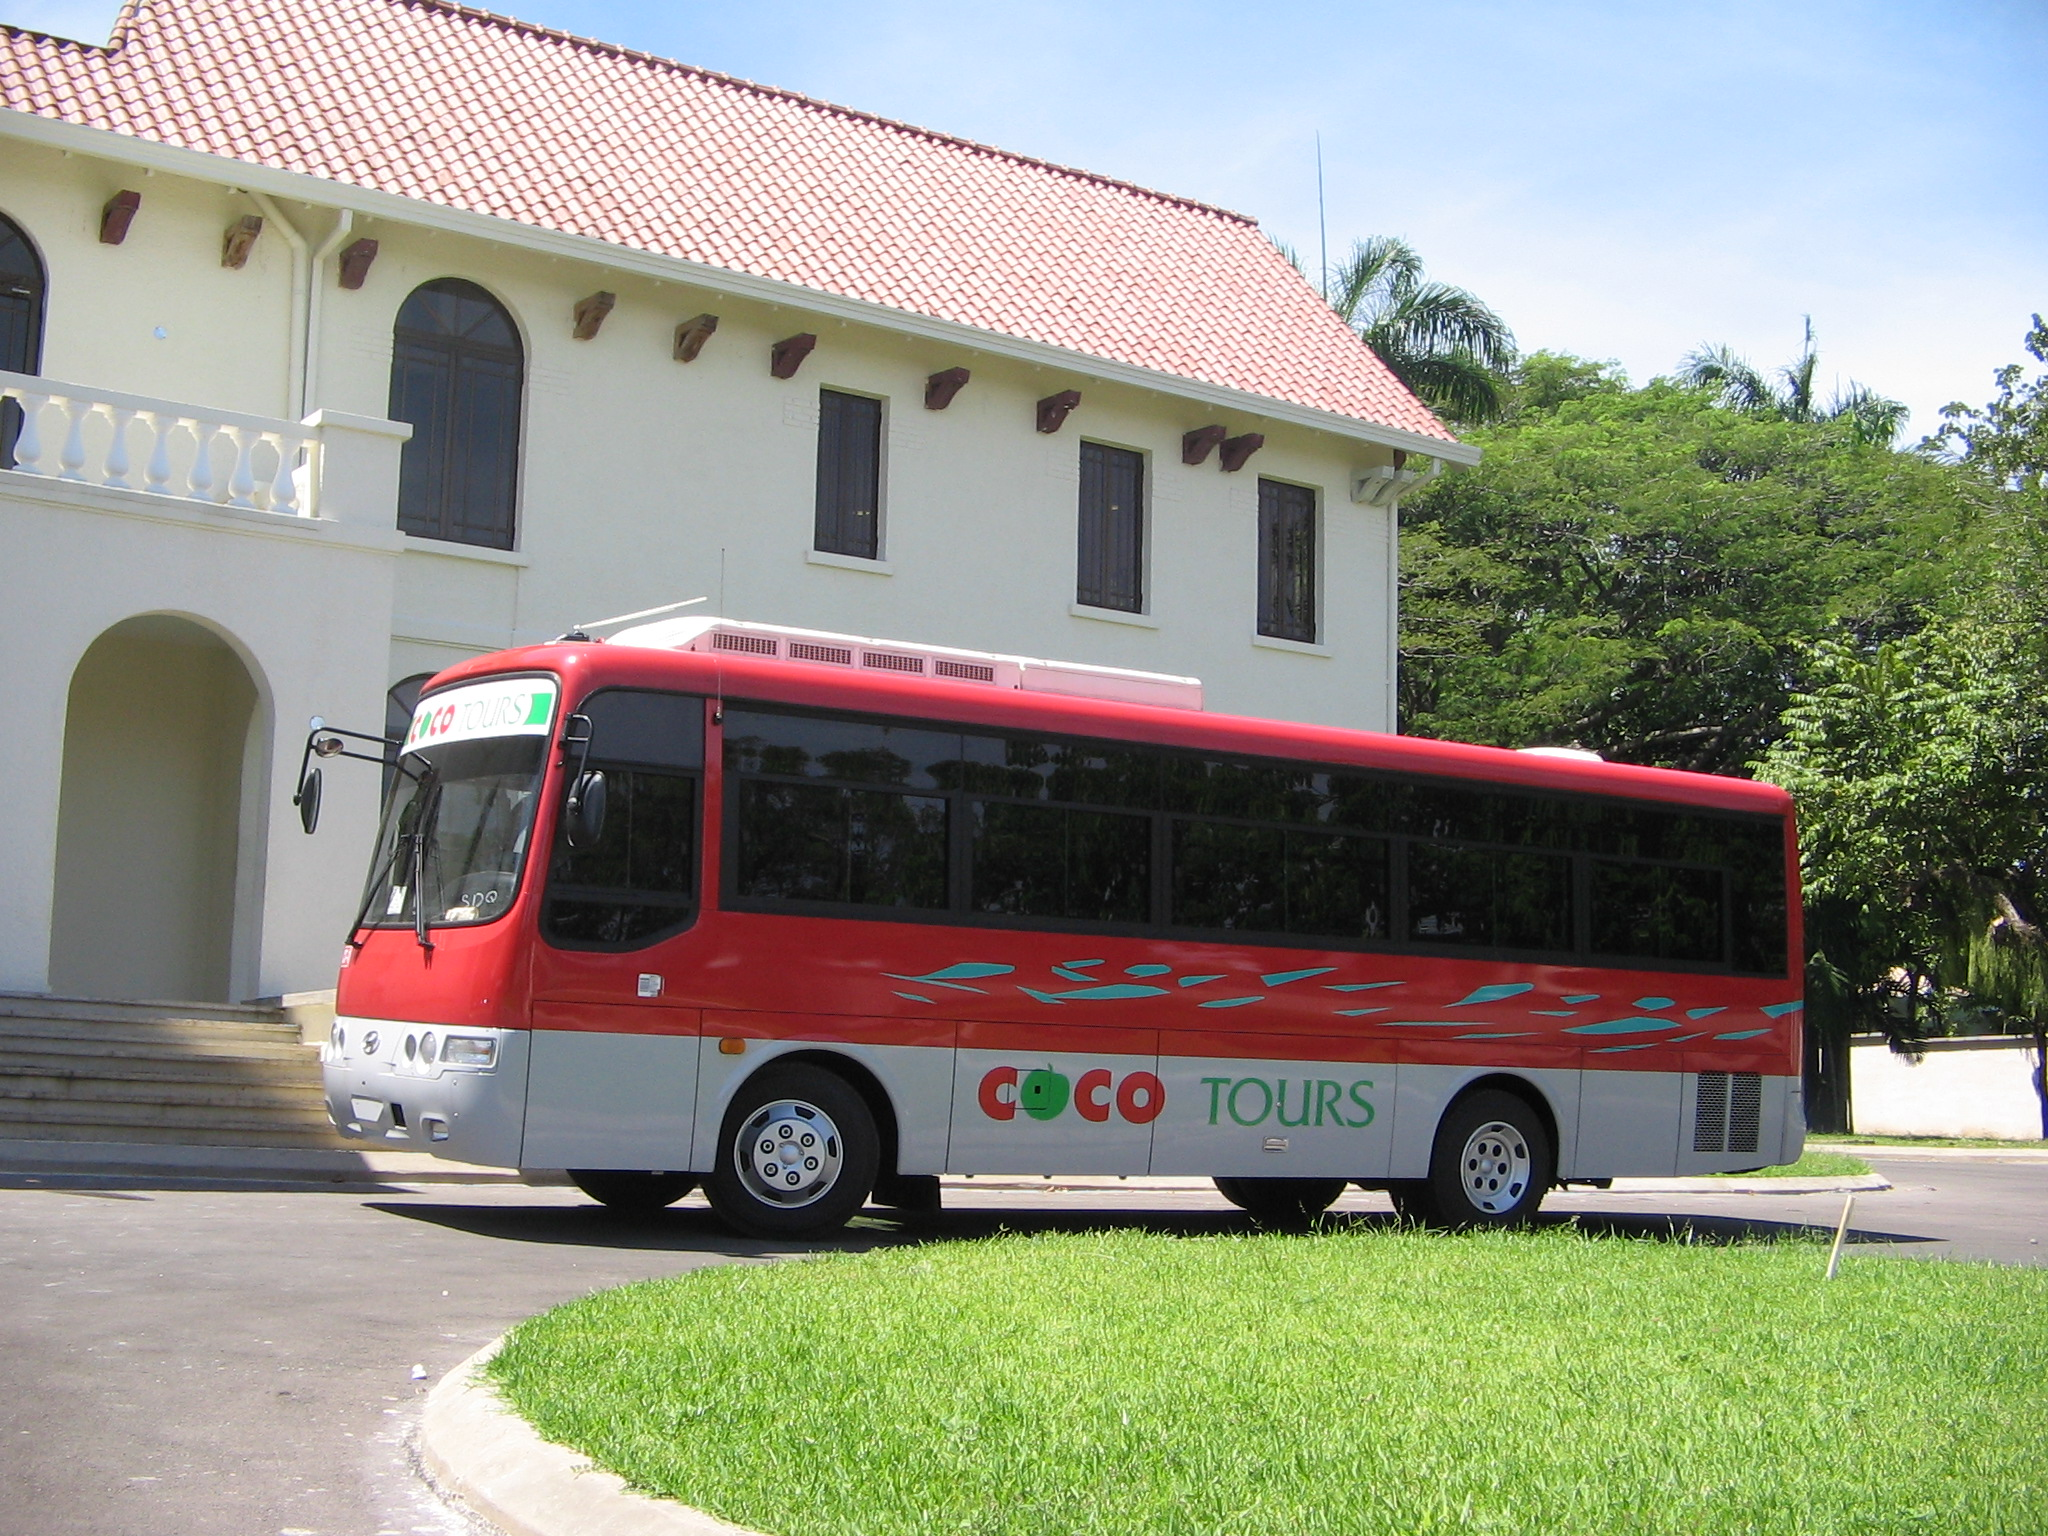 Larger Cocotours bus used on the route from Punta Cana to Samana